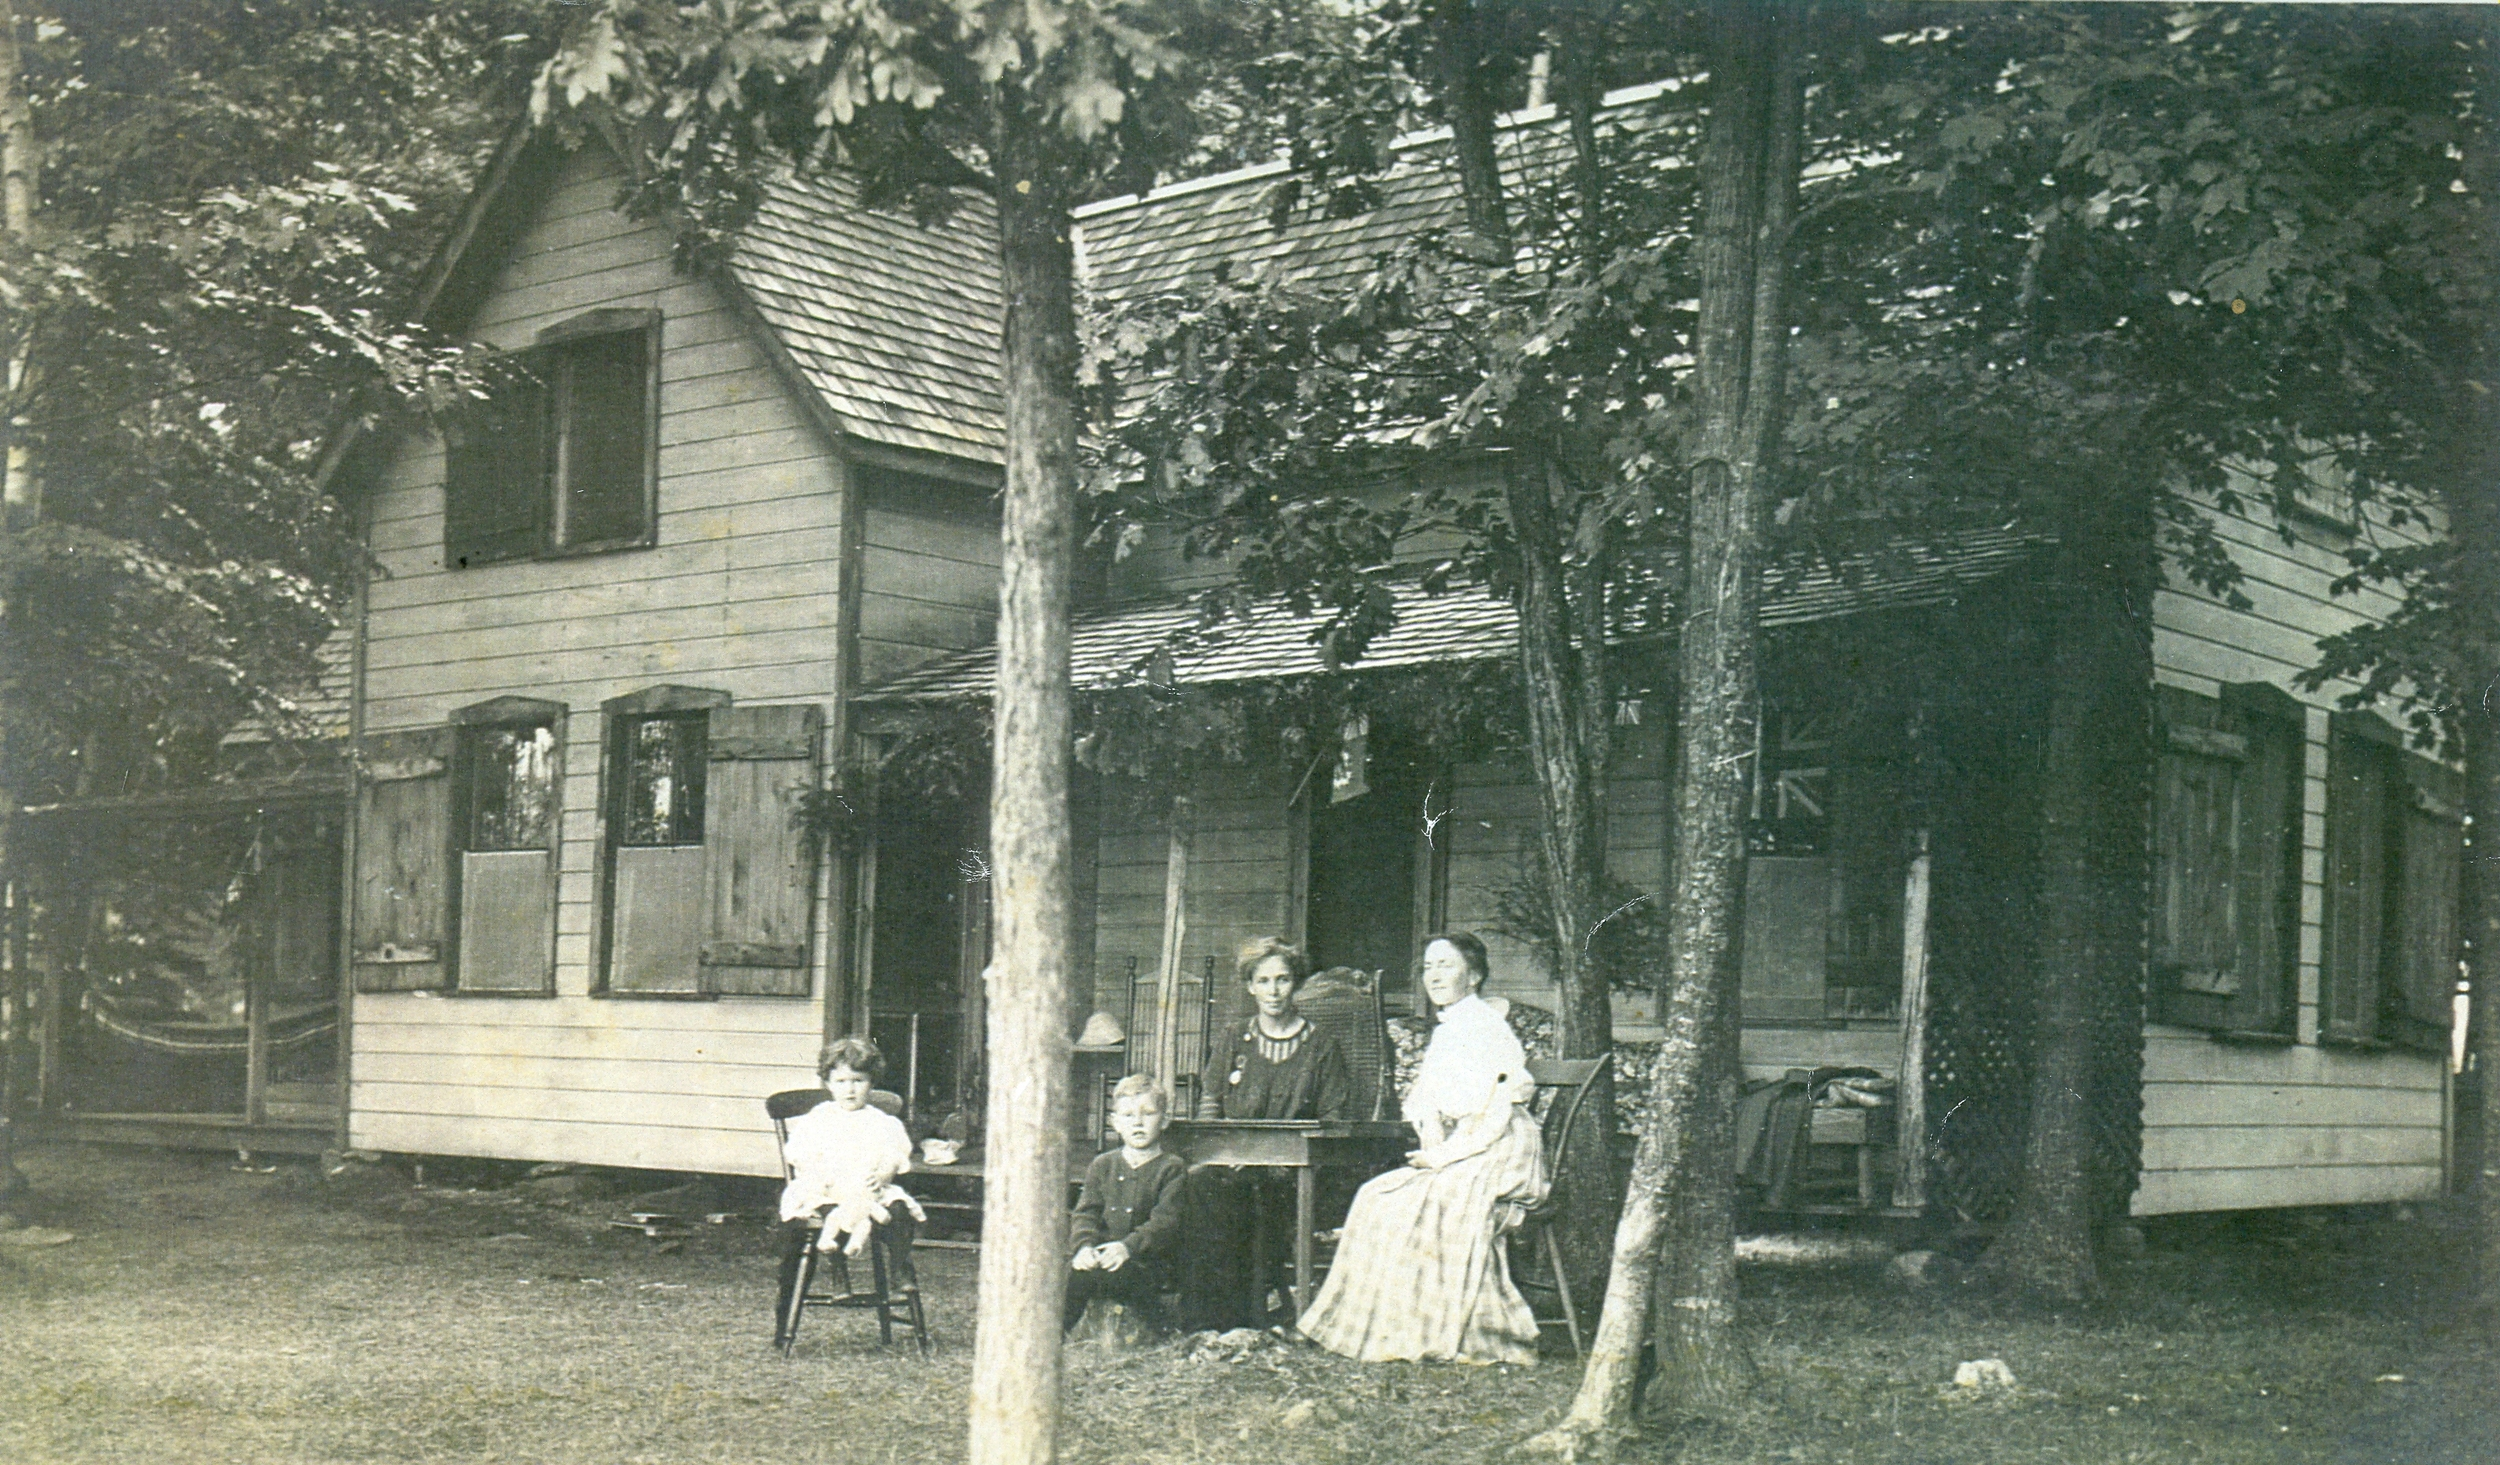 Parker-Ross Cottage torn down in 1960